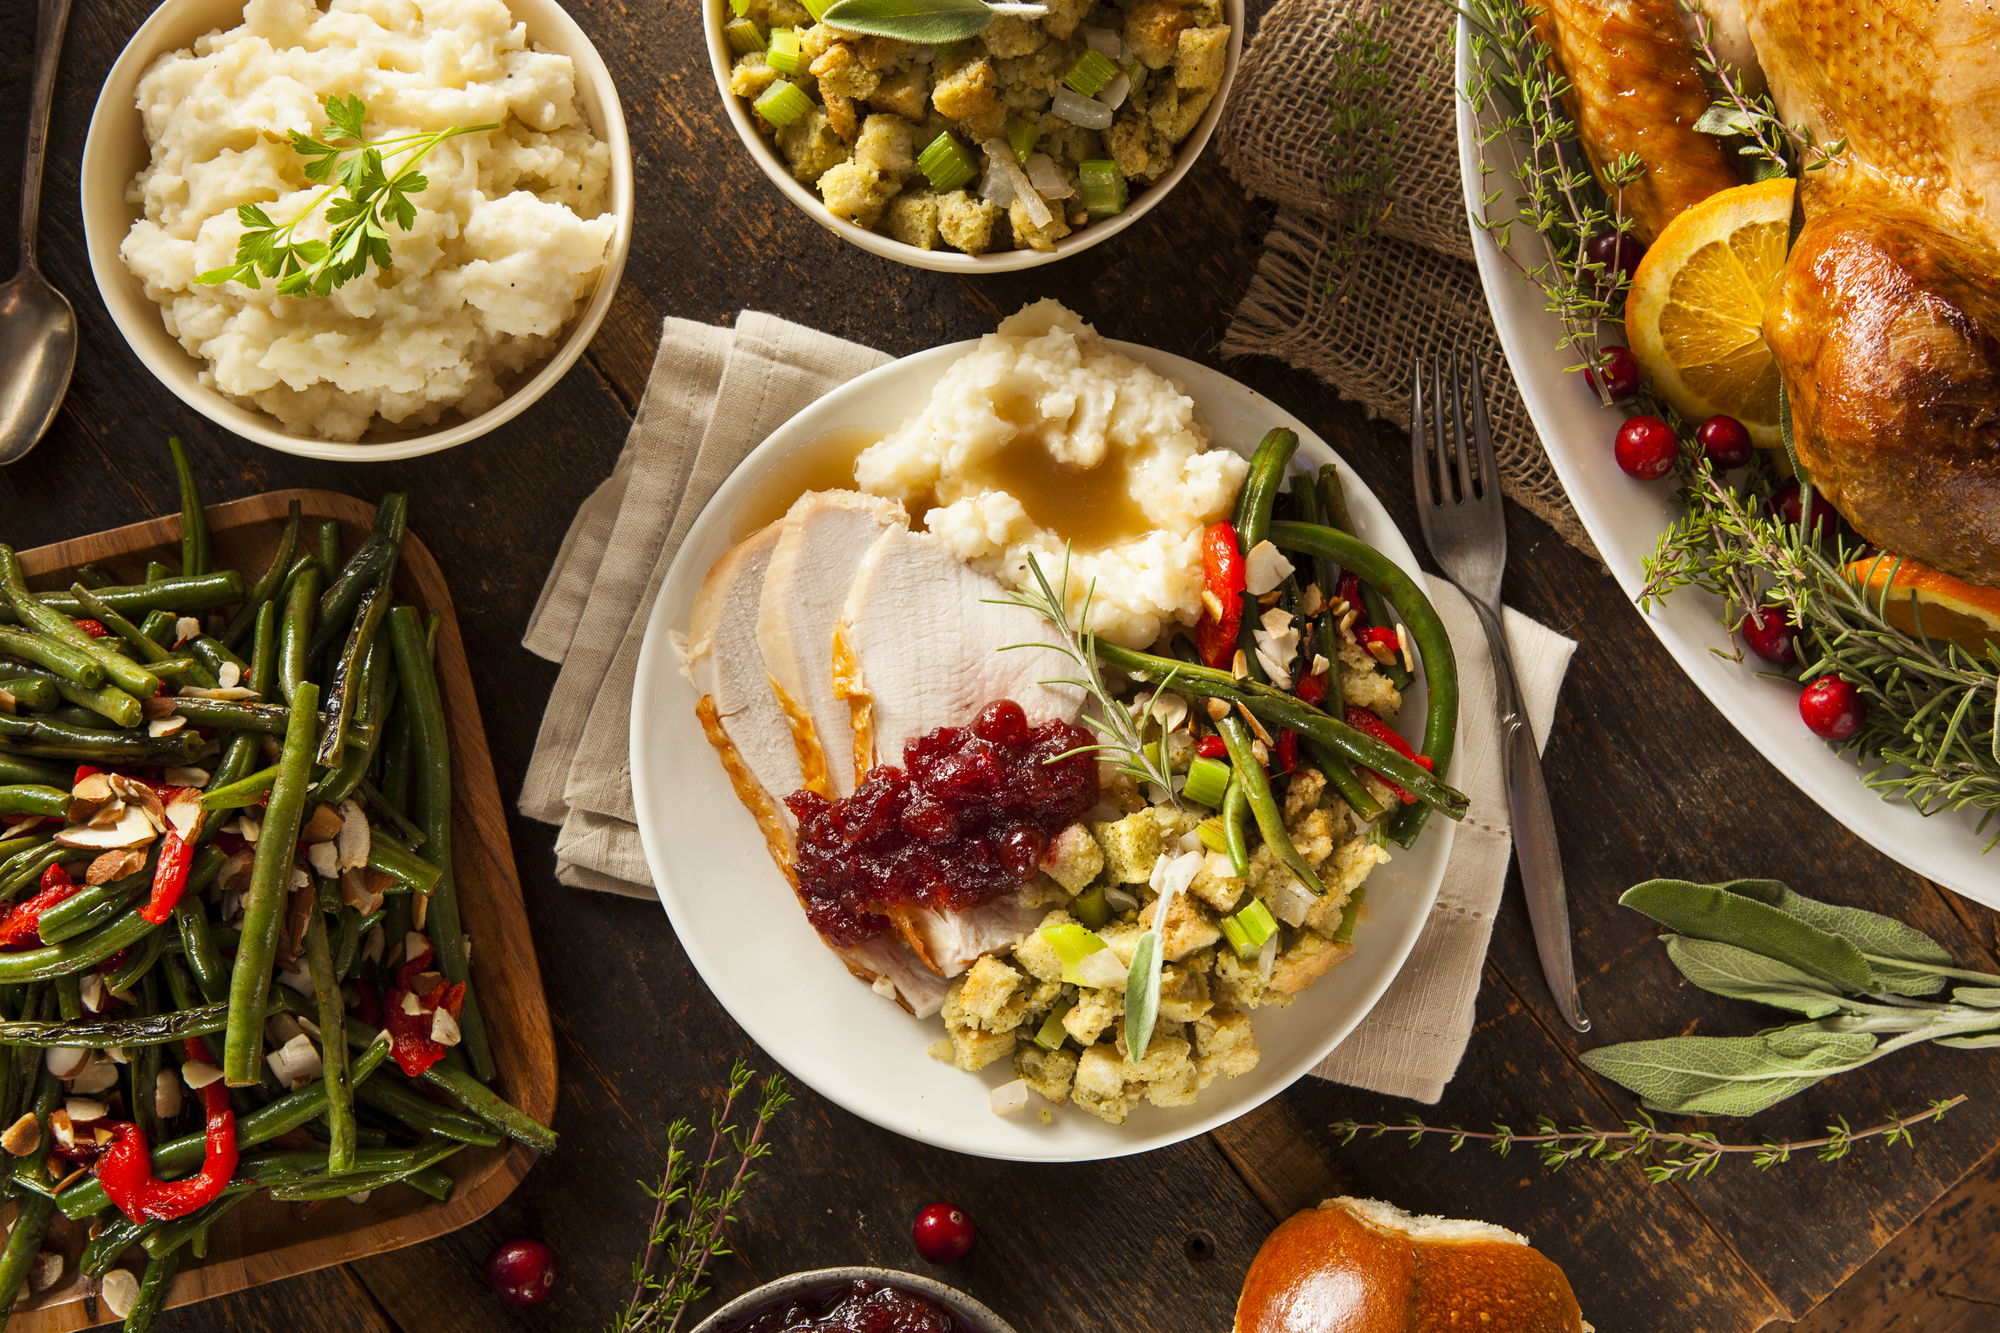 Gear up and cook the perfect Thanksgiving dinner